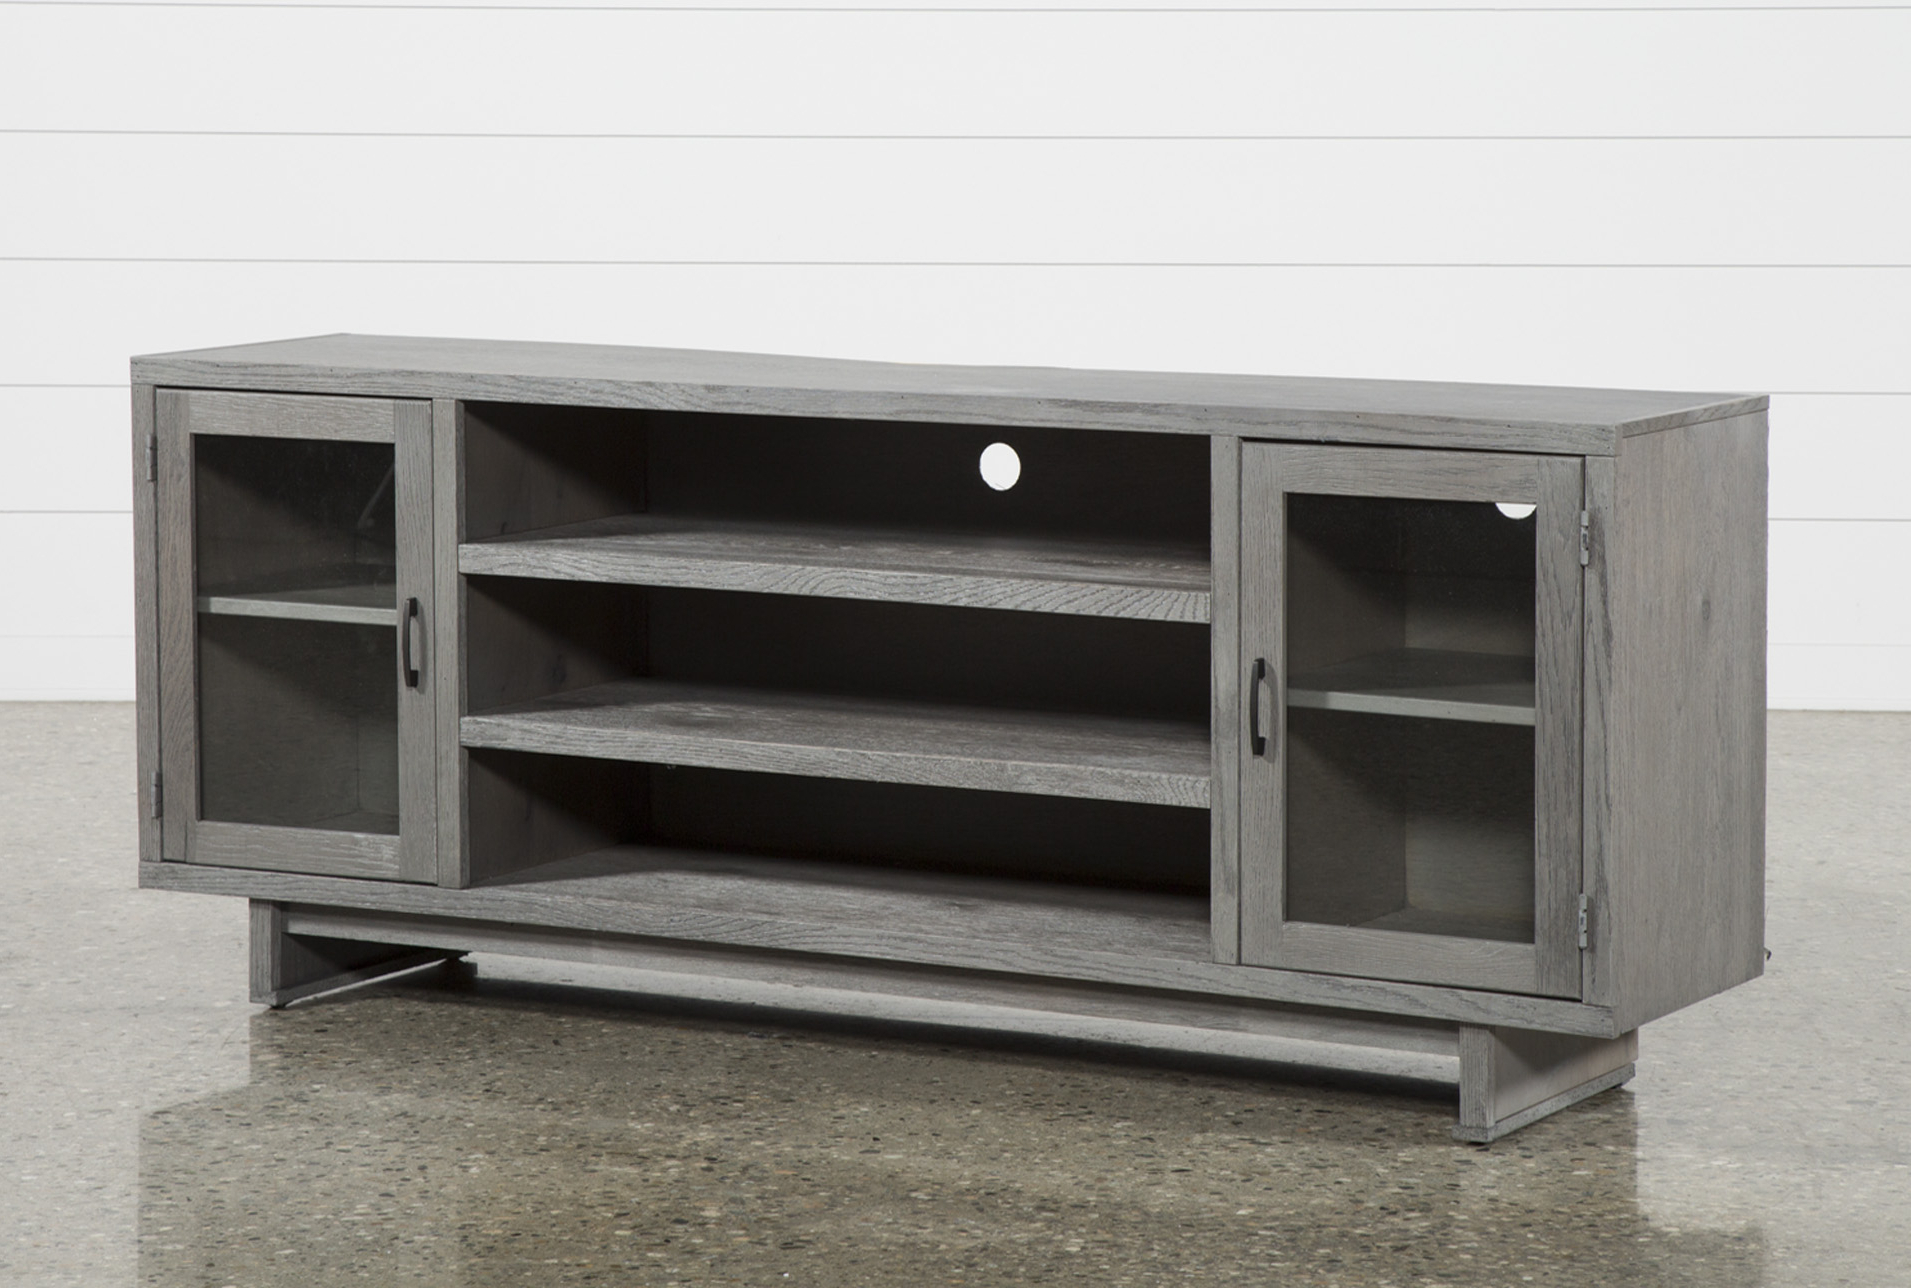 Melrose Titanium 74 Inch Tv Stand, Grey | House | Pinterest With Sinclair Grey 54 Inch Tv Stands (Gallery 5 of 20)